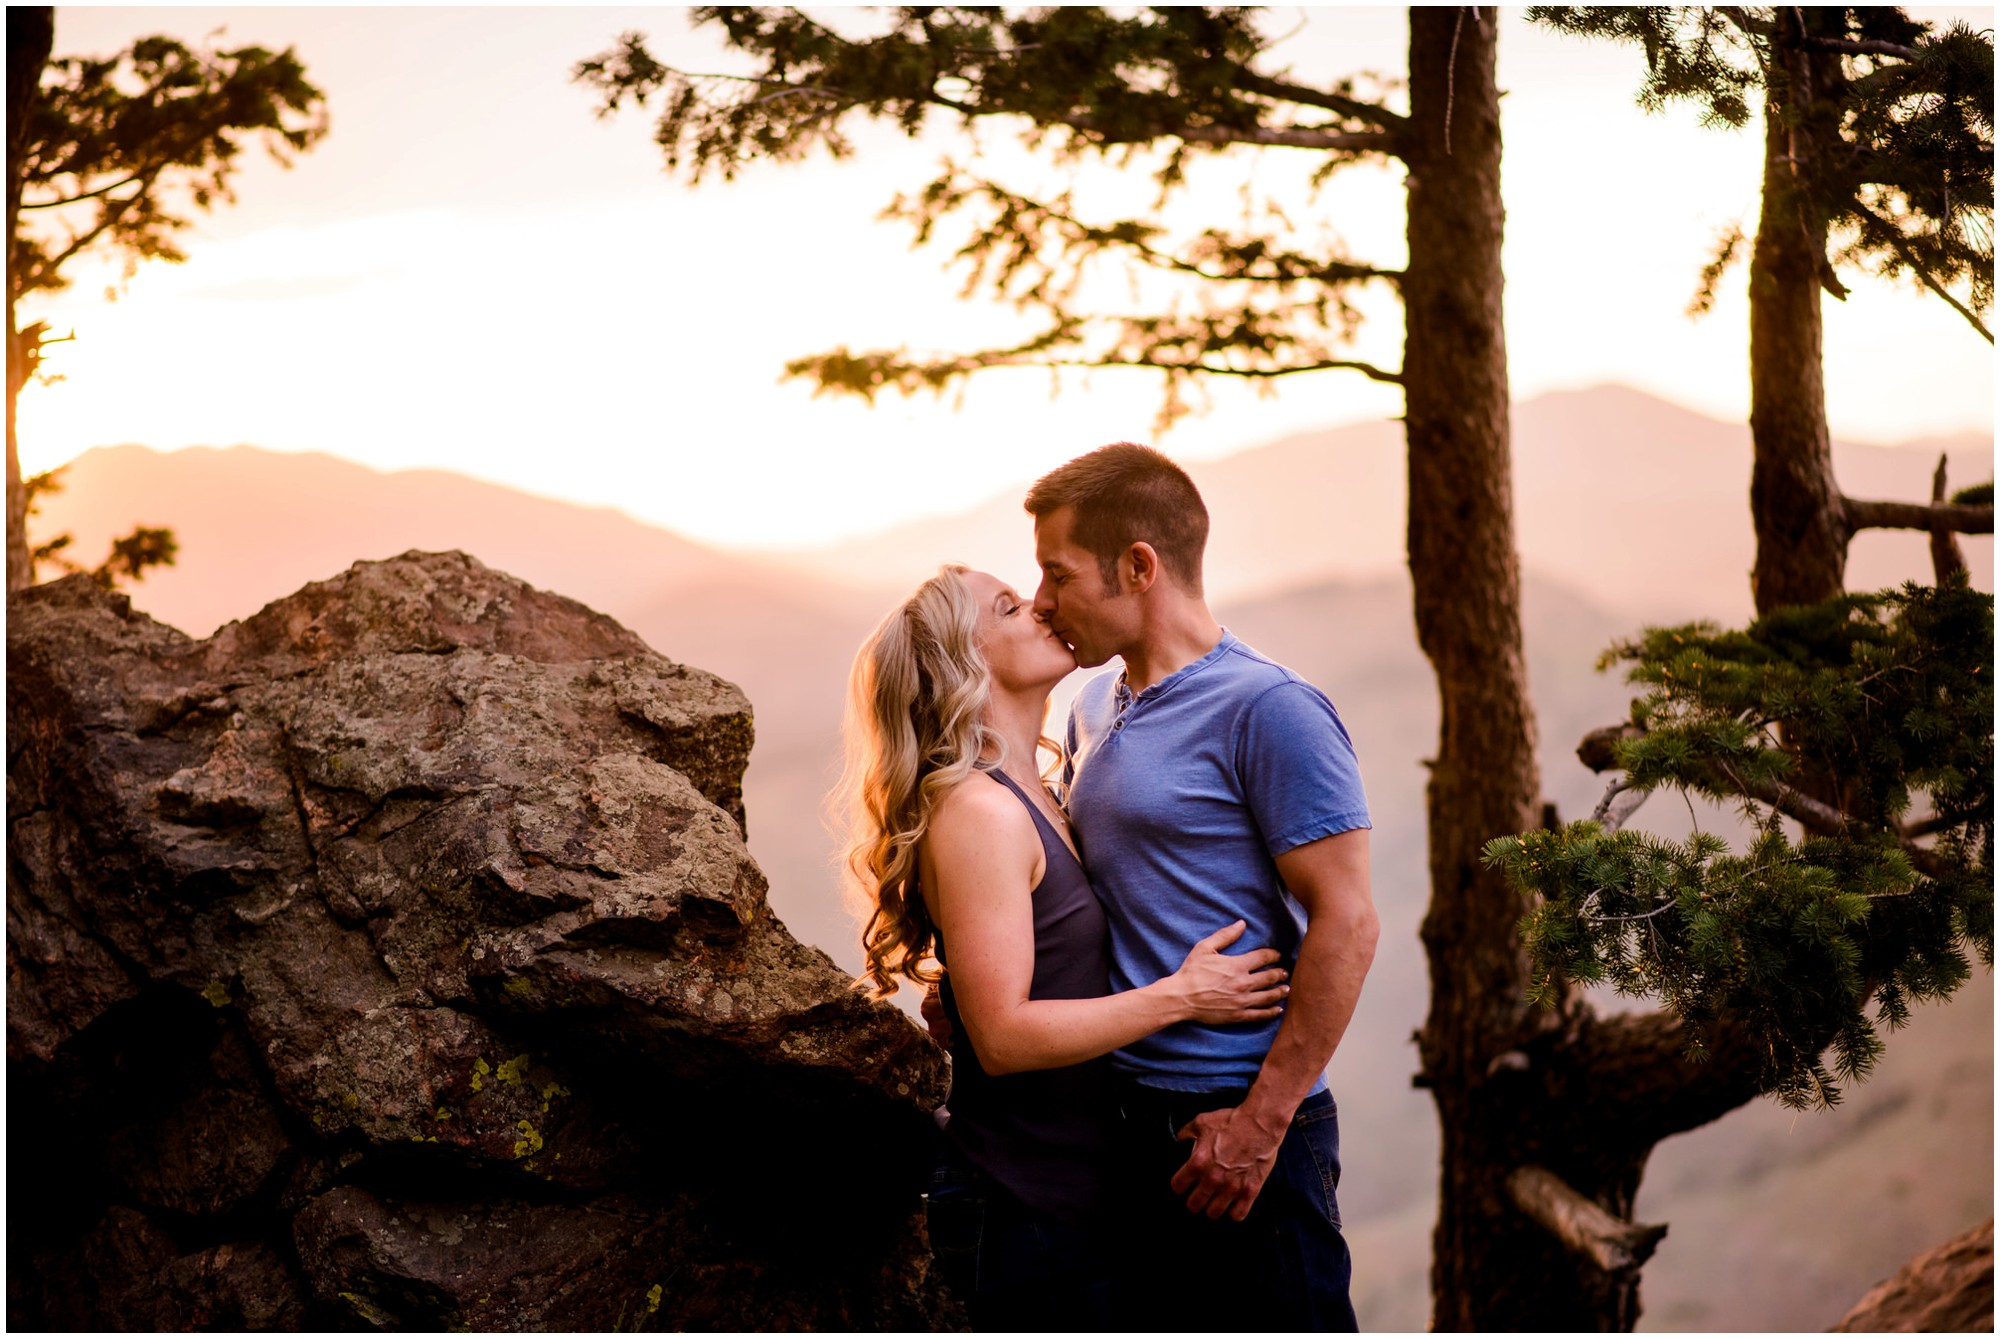 128-lookout-mountain-Golden-sunset-engagement-photography.jpg